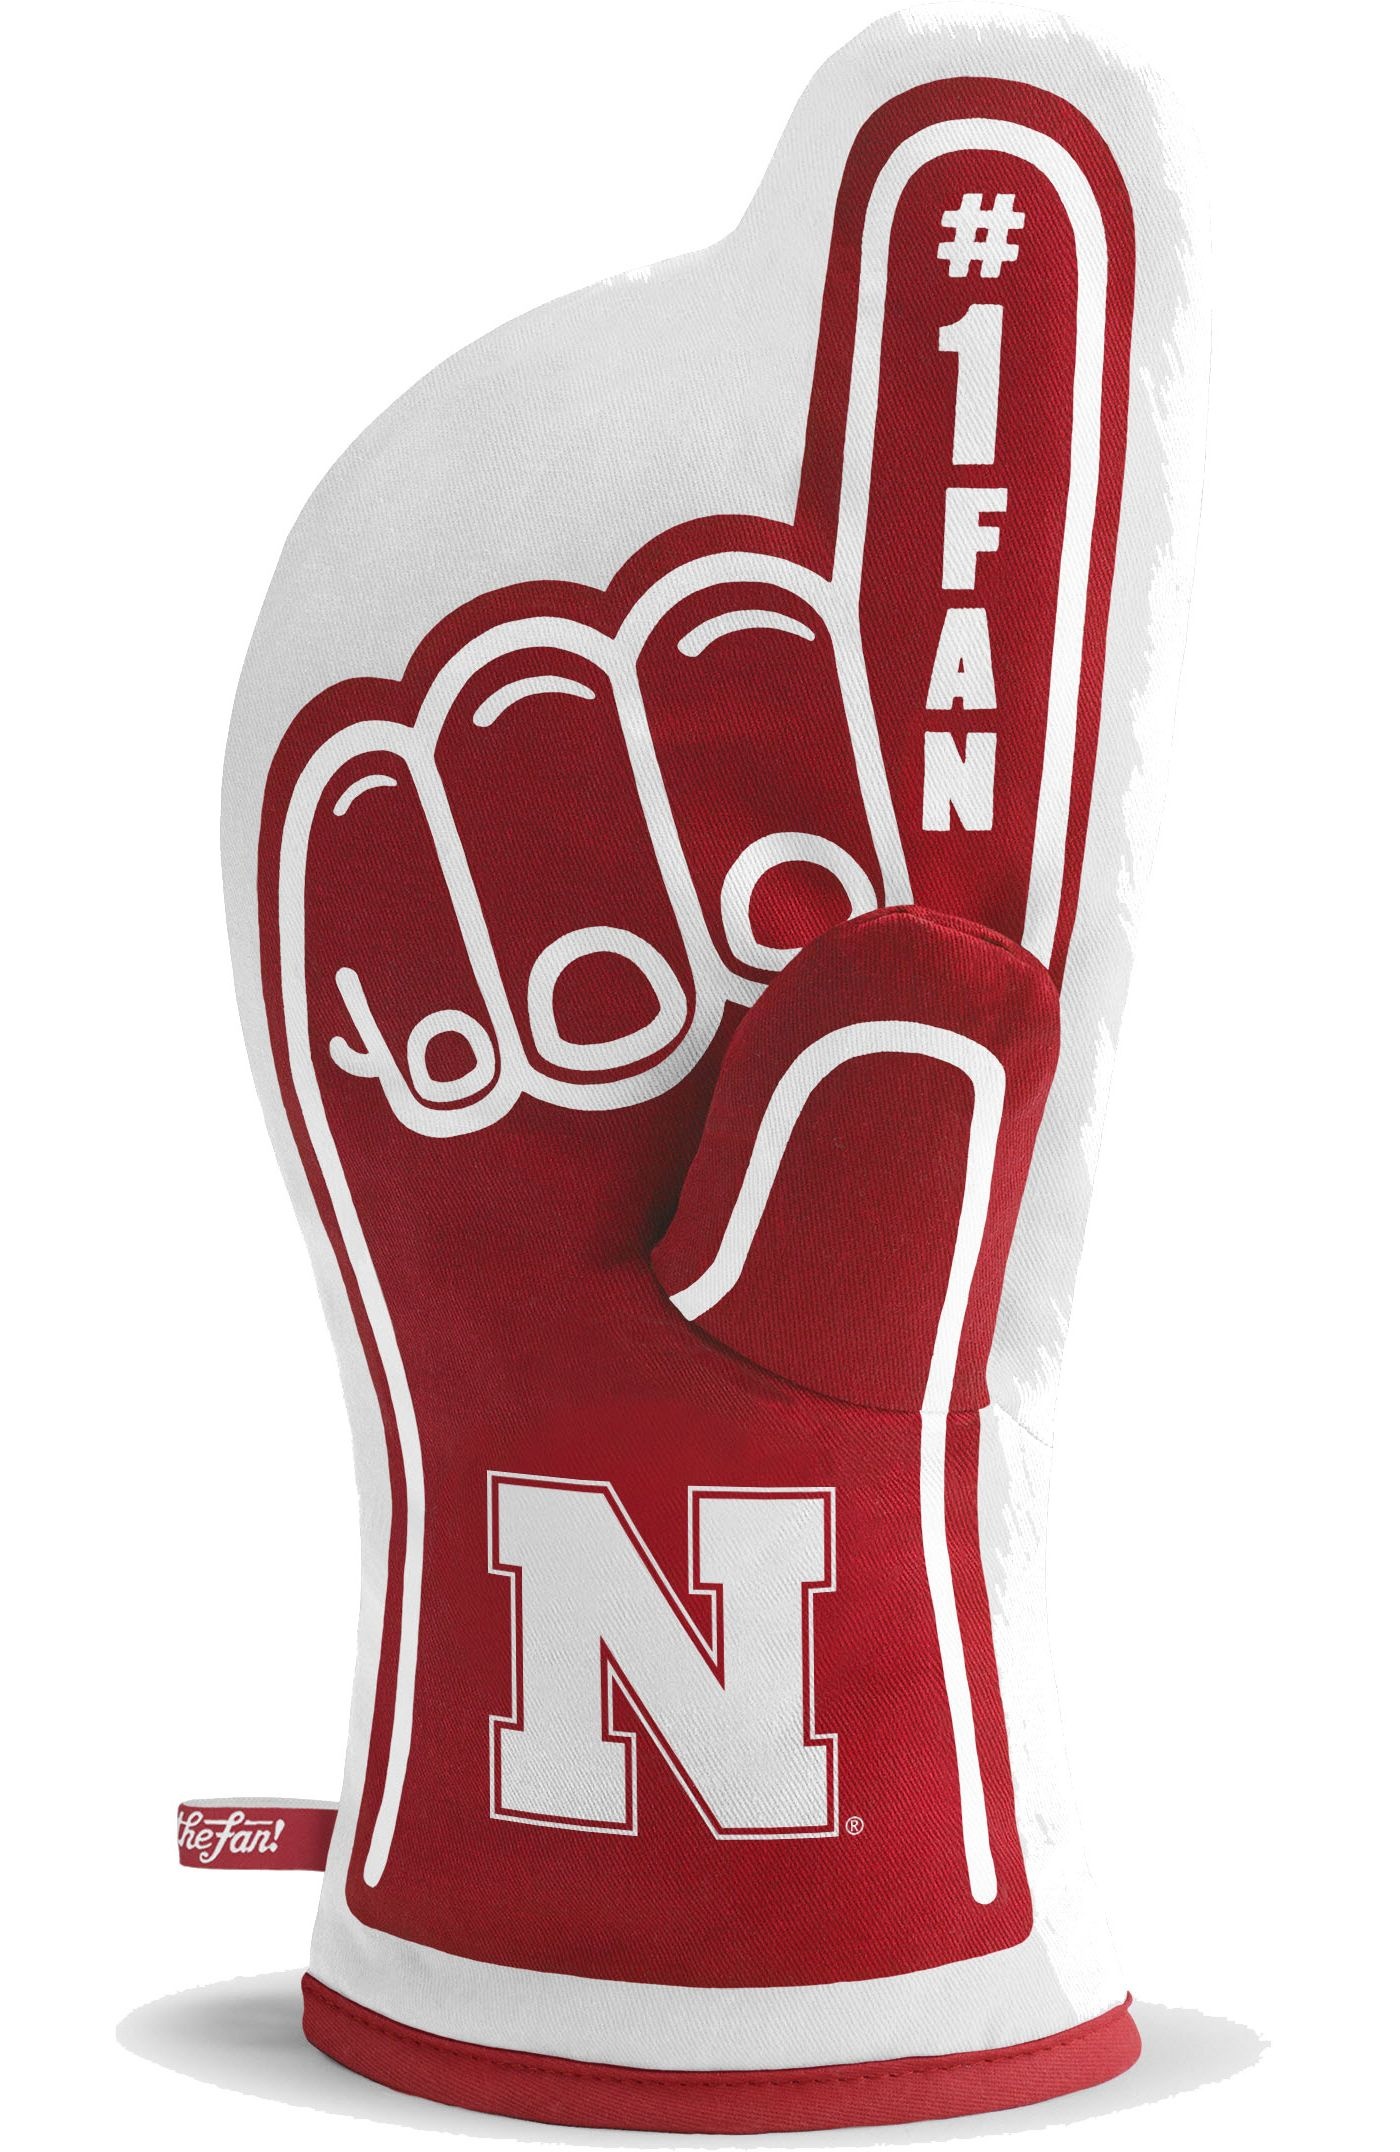 You The Fan Nebraska Cornhuskers #1 Oven Mitt